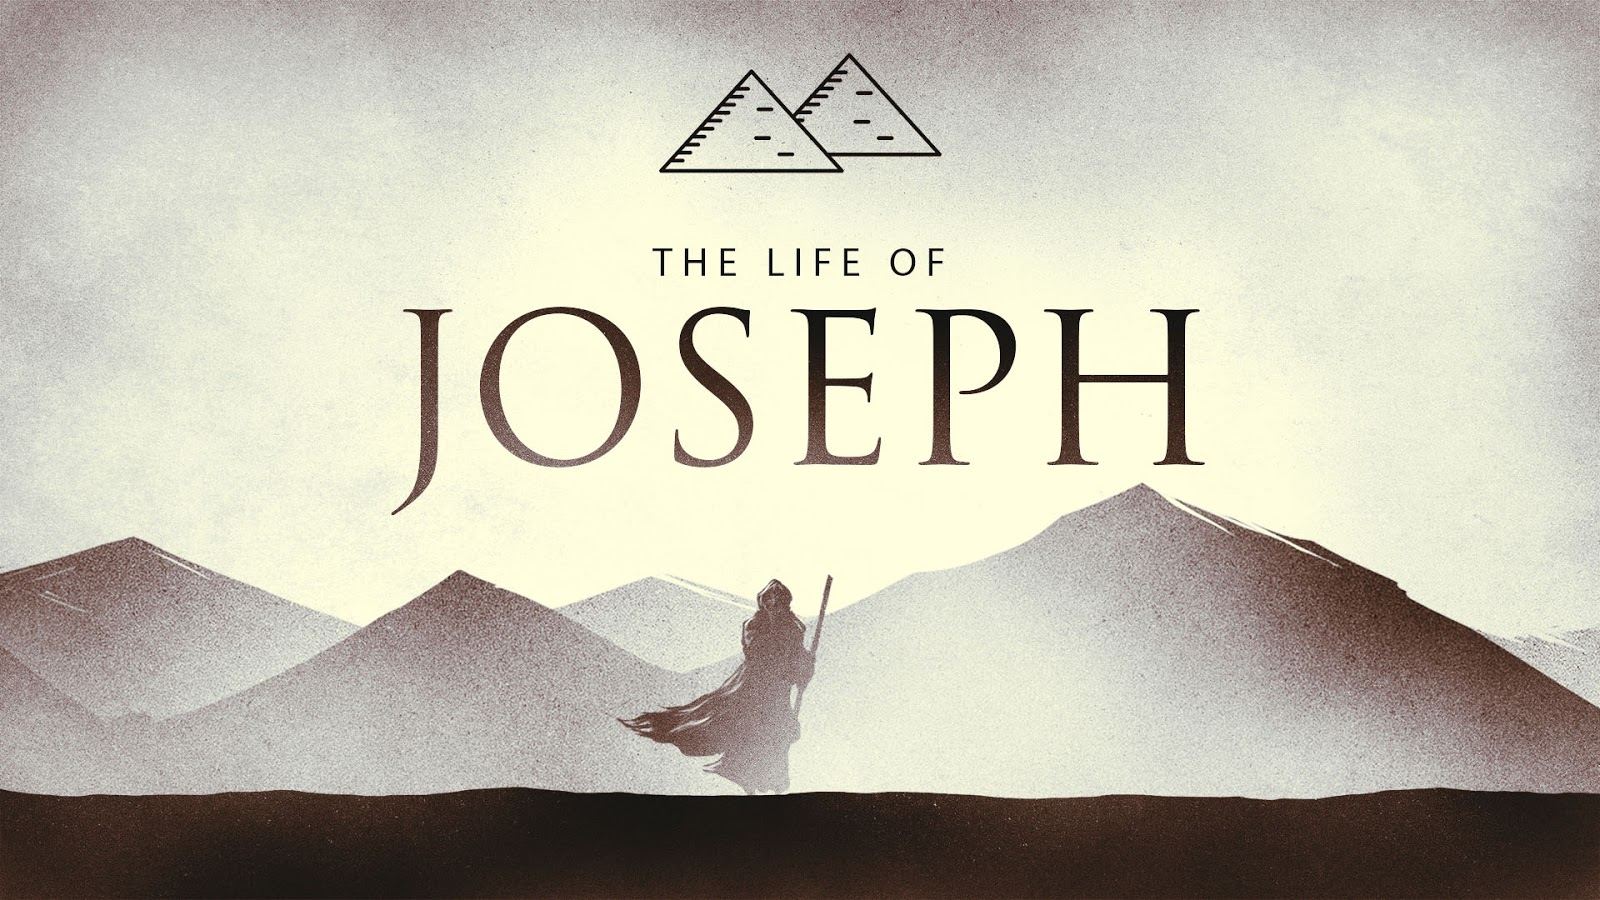 sermon on joseph Matthew 1:18-25 the faithfulness of joseph by dr philip w mclarty i take it you've noticed that the reading of the christmas story this year is from matthew's.